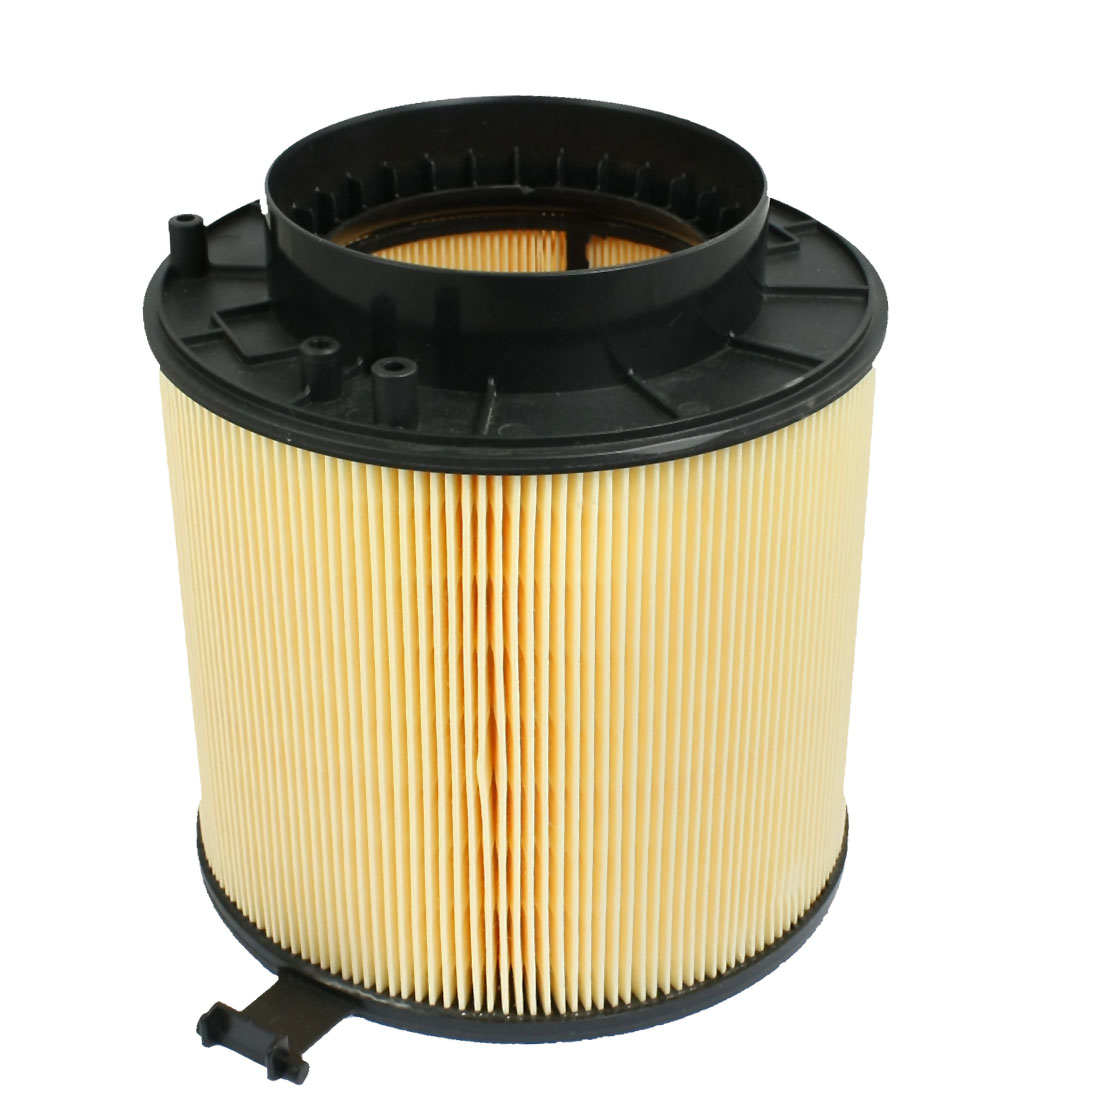 Car Air-intake System Cartridge Air Filter Black Yellow 8K0-133-843